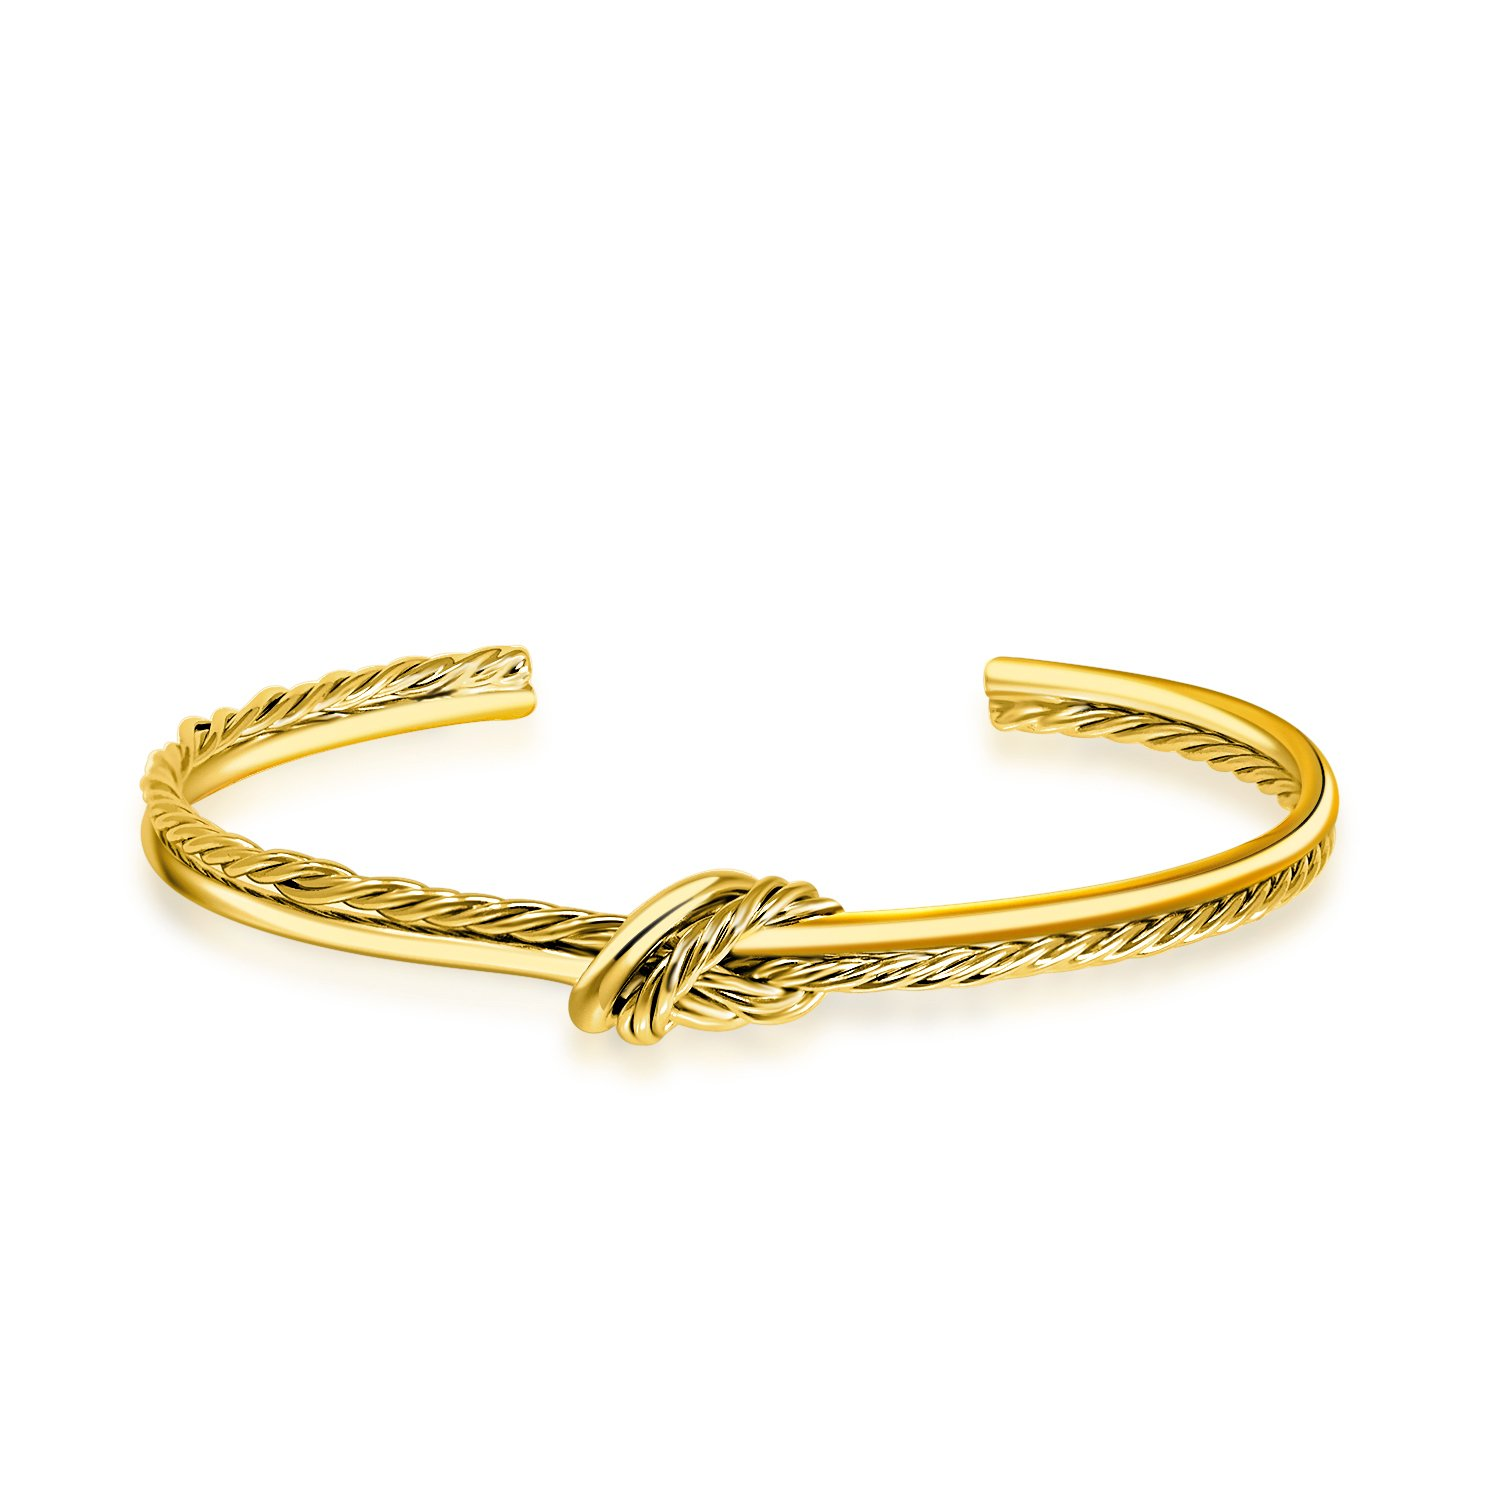 I'S ISAACSONG 14k Gold Plated Adjustable Cable Wire Twisted Band Infinity Love Forever Knot Open Cuff Bangle Bracelet Set for Teen Girls Women (14k Yellow Gold Plated)